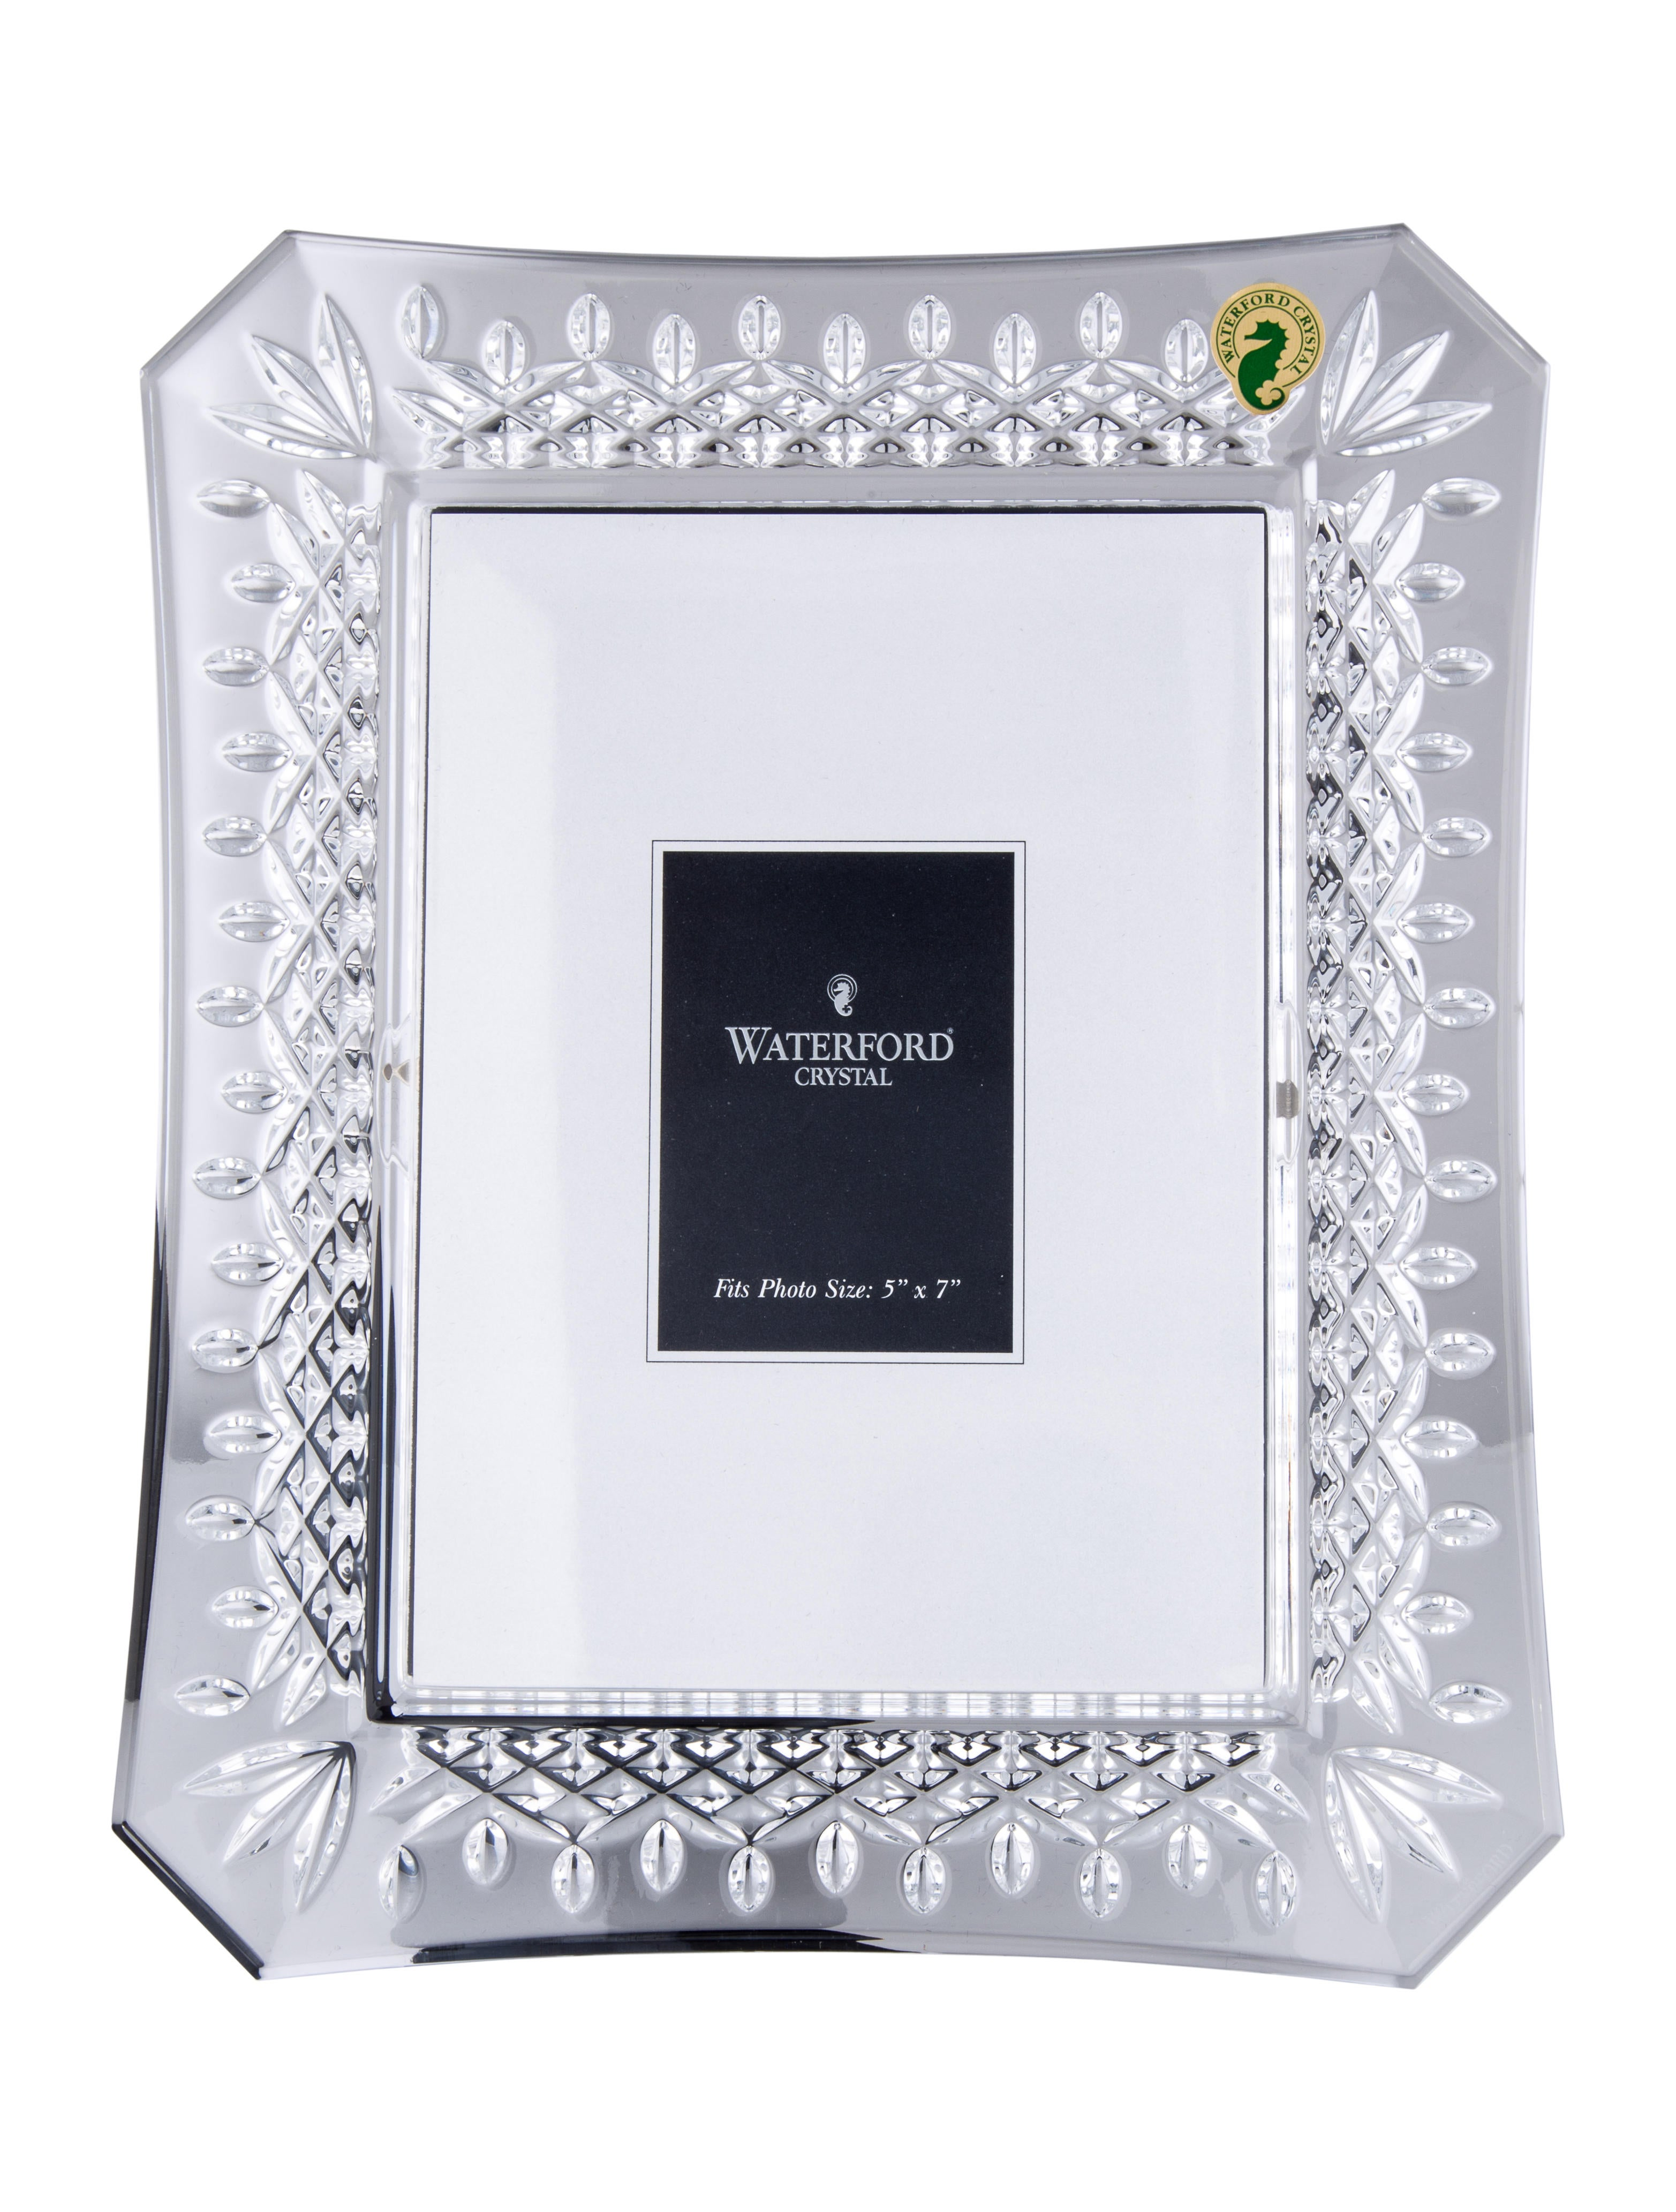 Waterford Crystal Crystal Lismore Frame Decor And Accessories